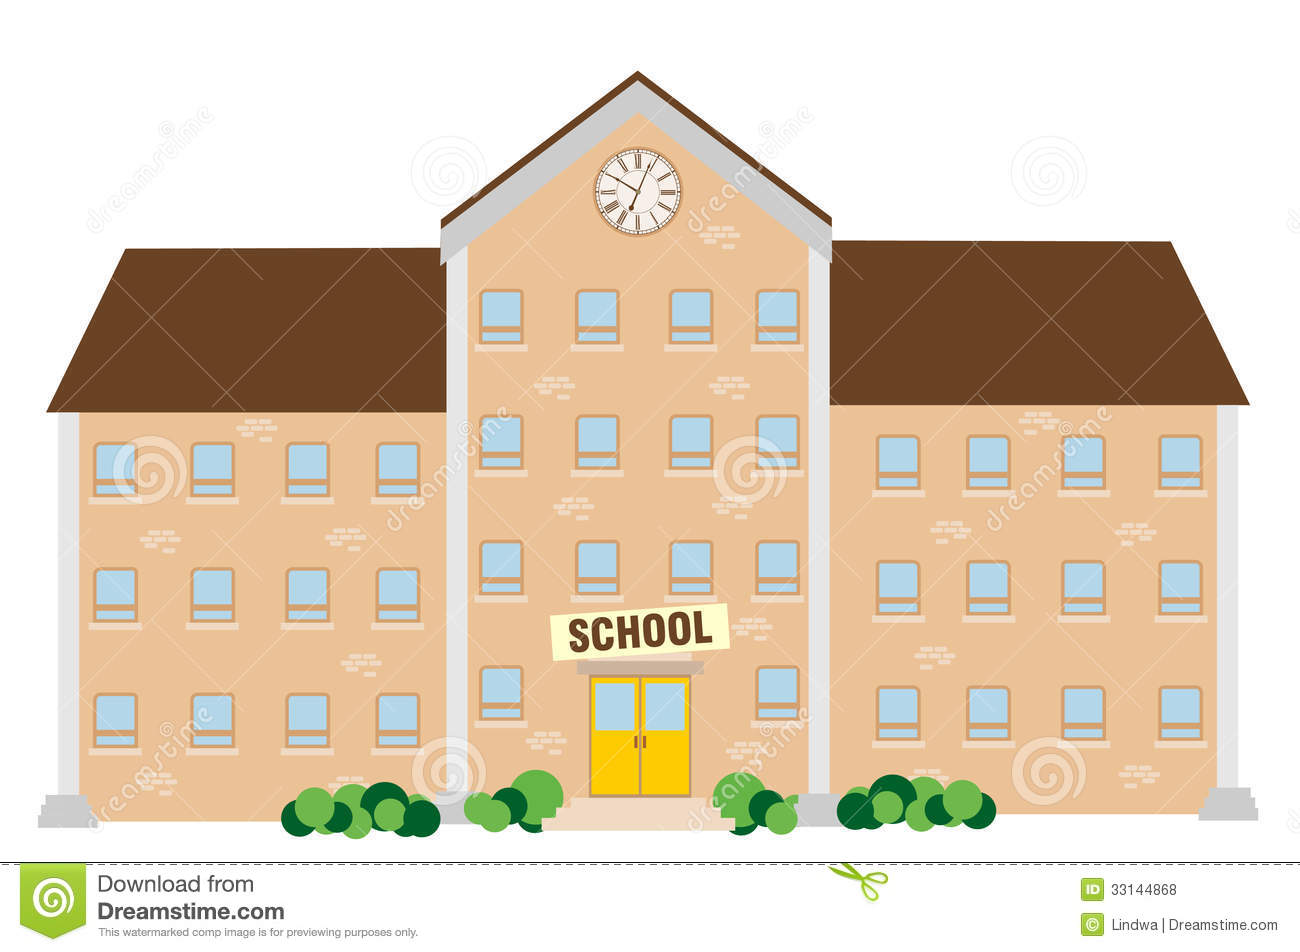 School Building Illustration On White Background Mr No Pr No 3 913 6